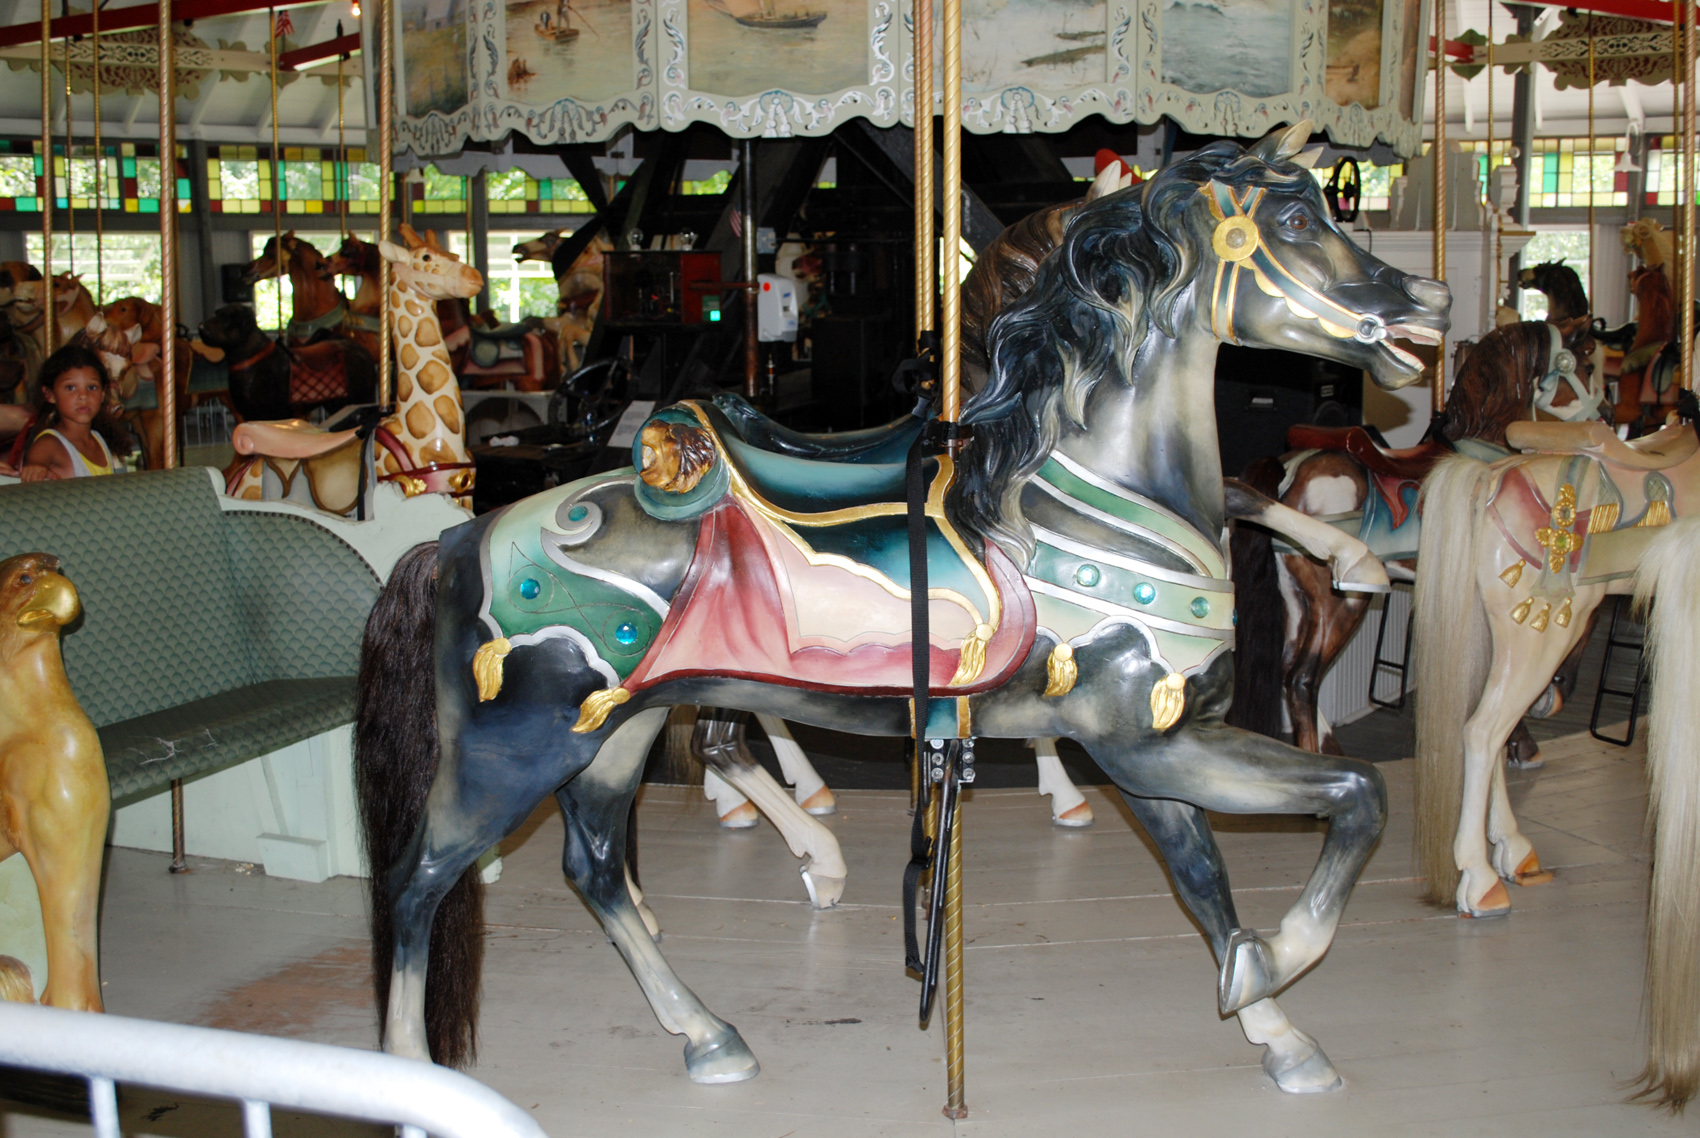 The-Looff-carousel-at-Slater-Park-Rhode-Island-65